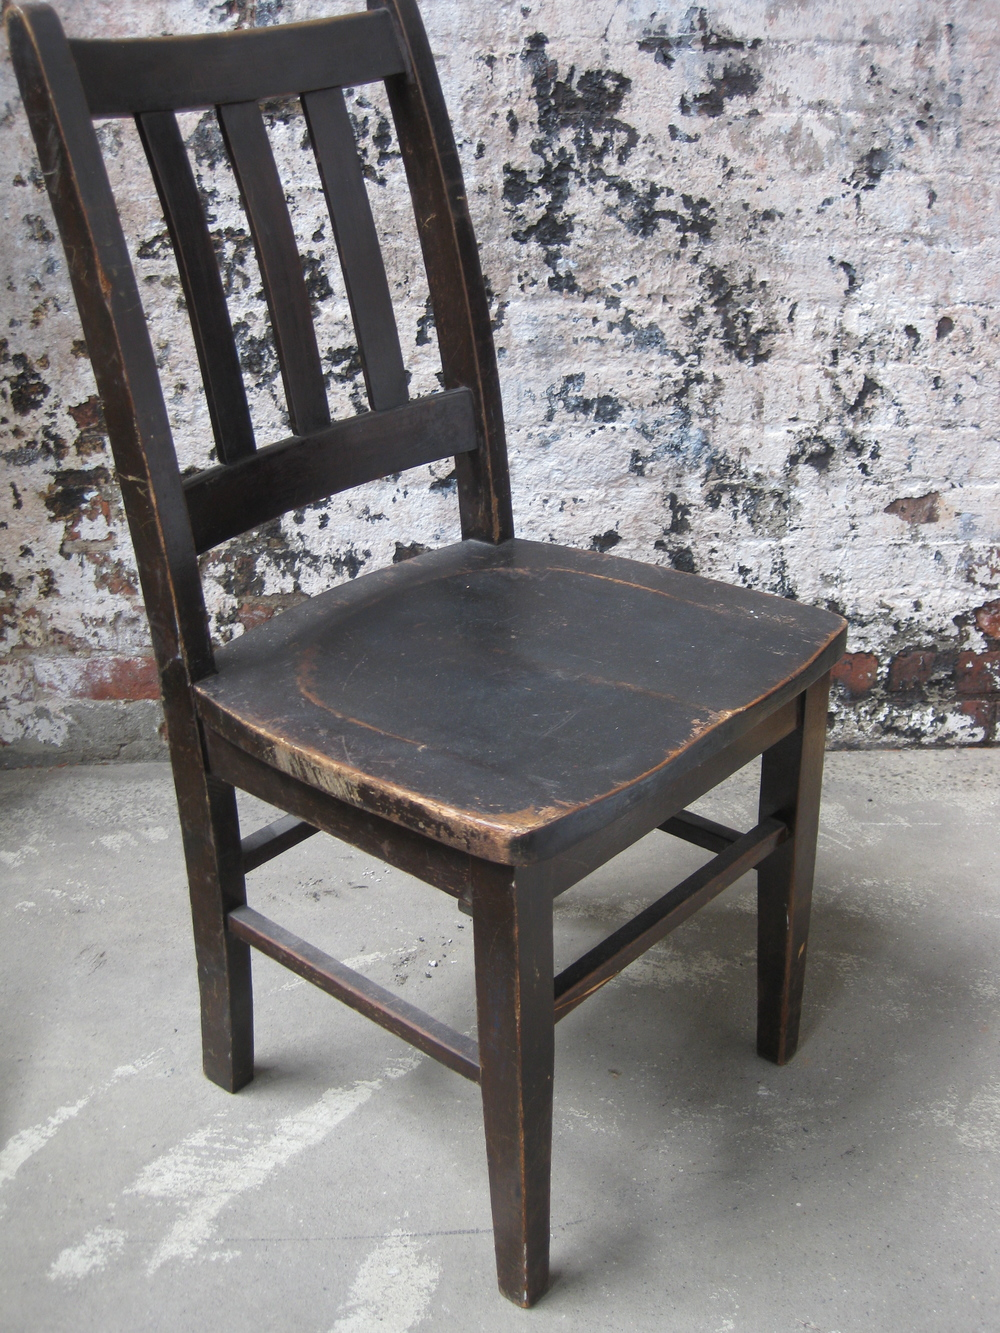 Antique Wooden Chairs ~ Wood seating — primate props